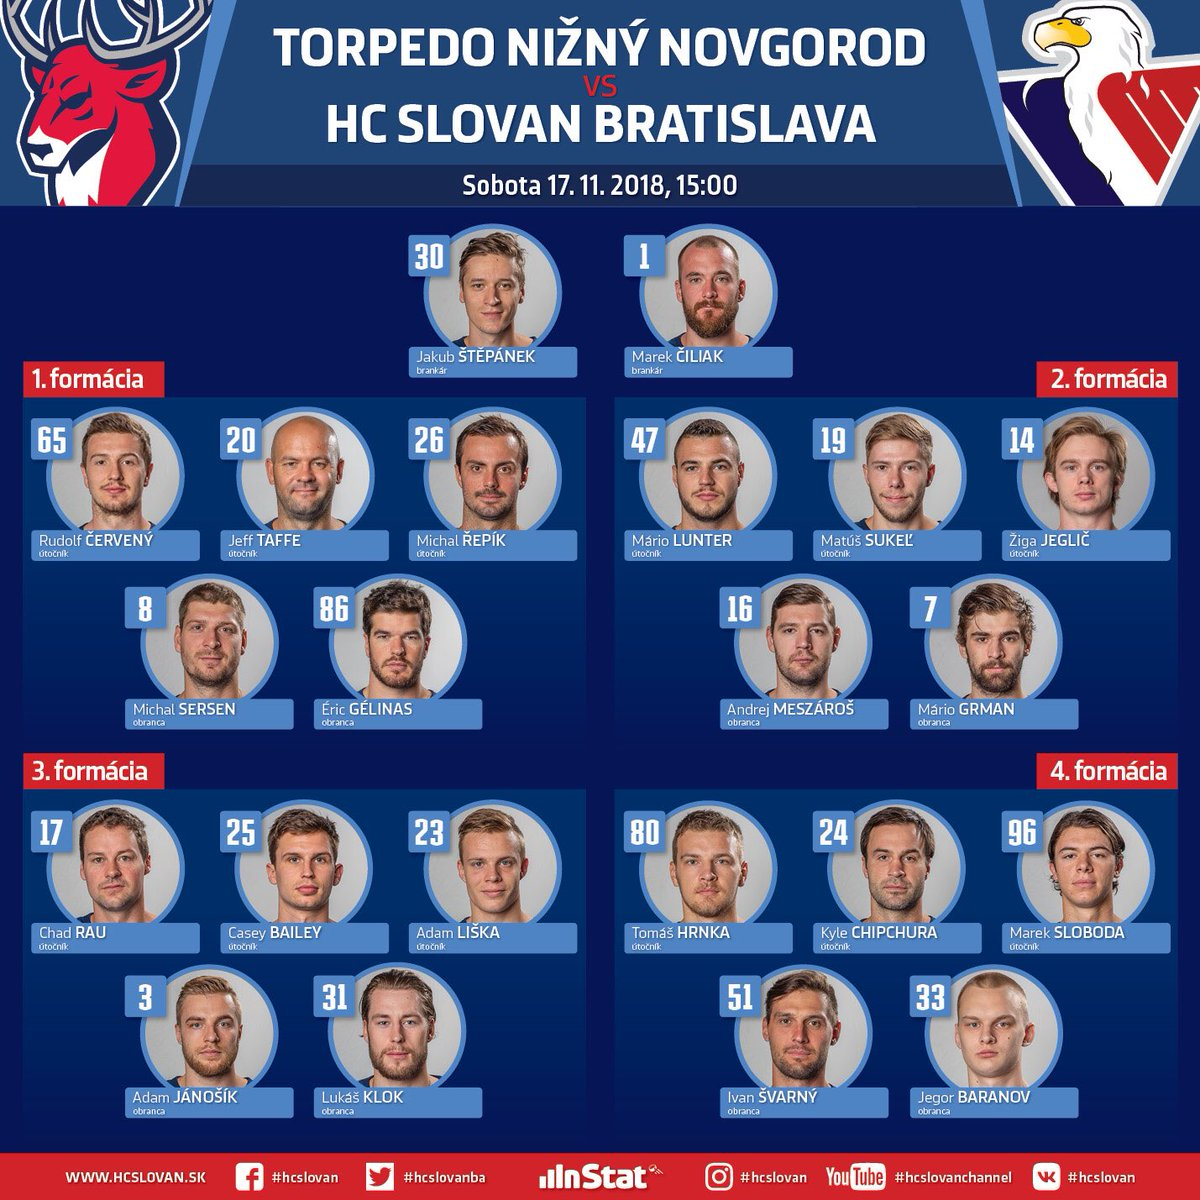 Winning line up of #hcslovan from Nizhnekamsk remains intact for today's ⁦@khl⁩ game at ⁦@torpedonn⁩. #vernislovanu https://t.co/dKxk2dyUTD